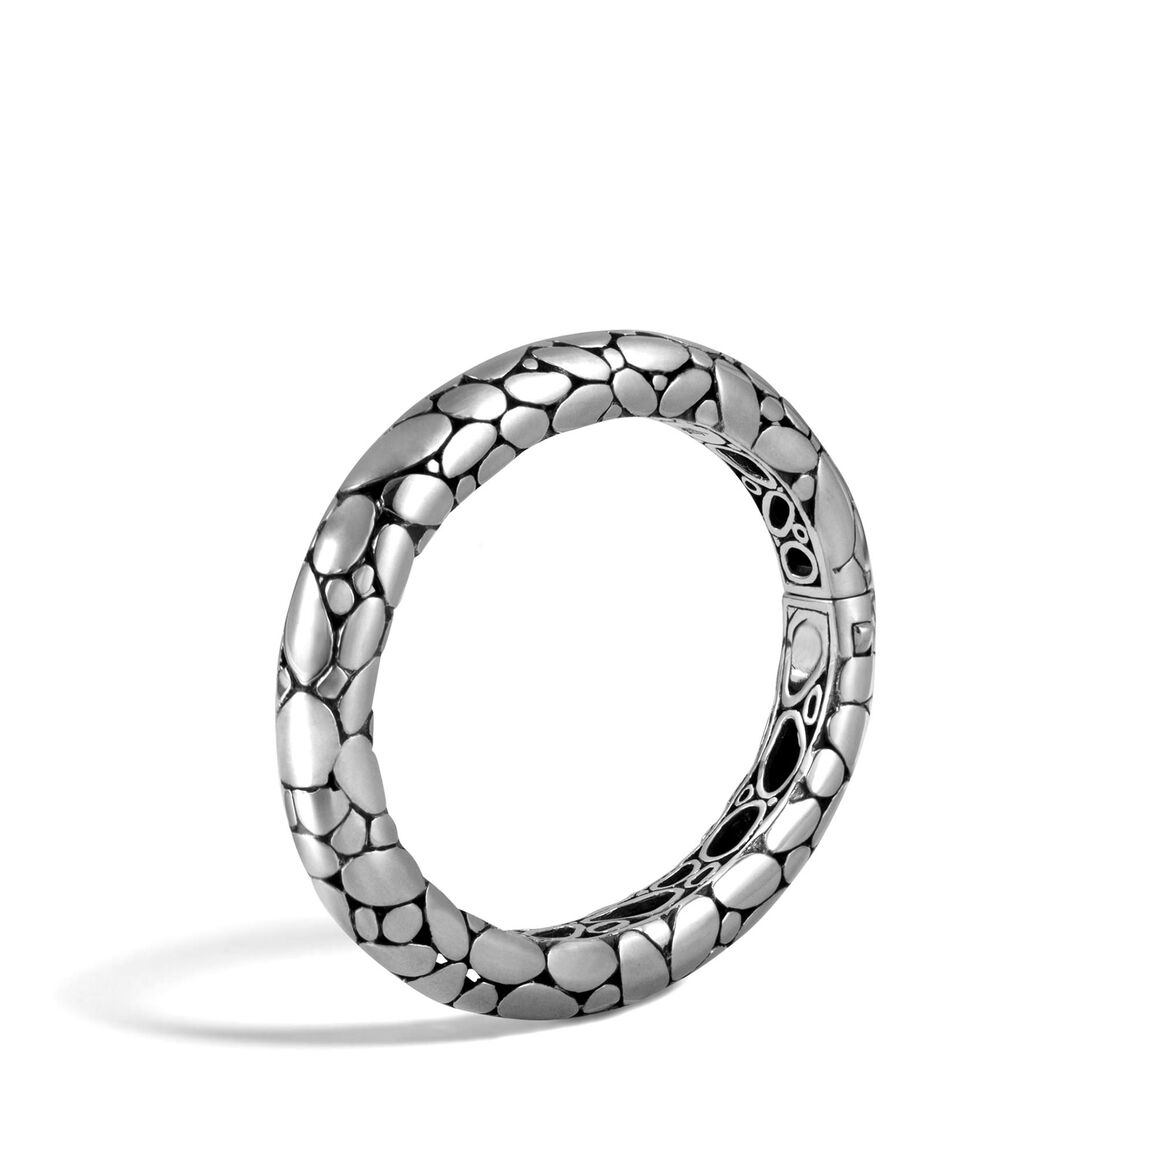 Kali 10MM Hinged Bangle in Silver